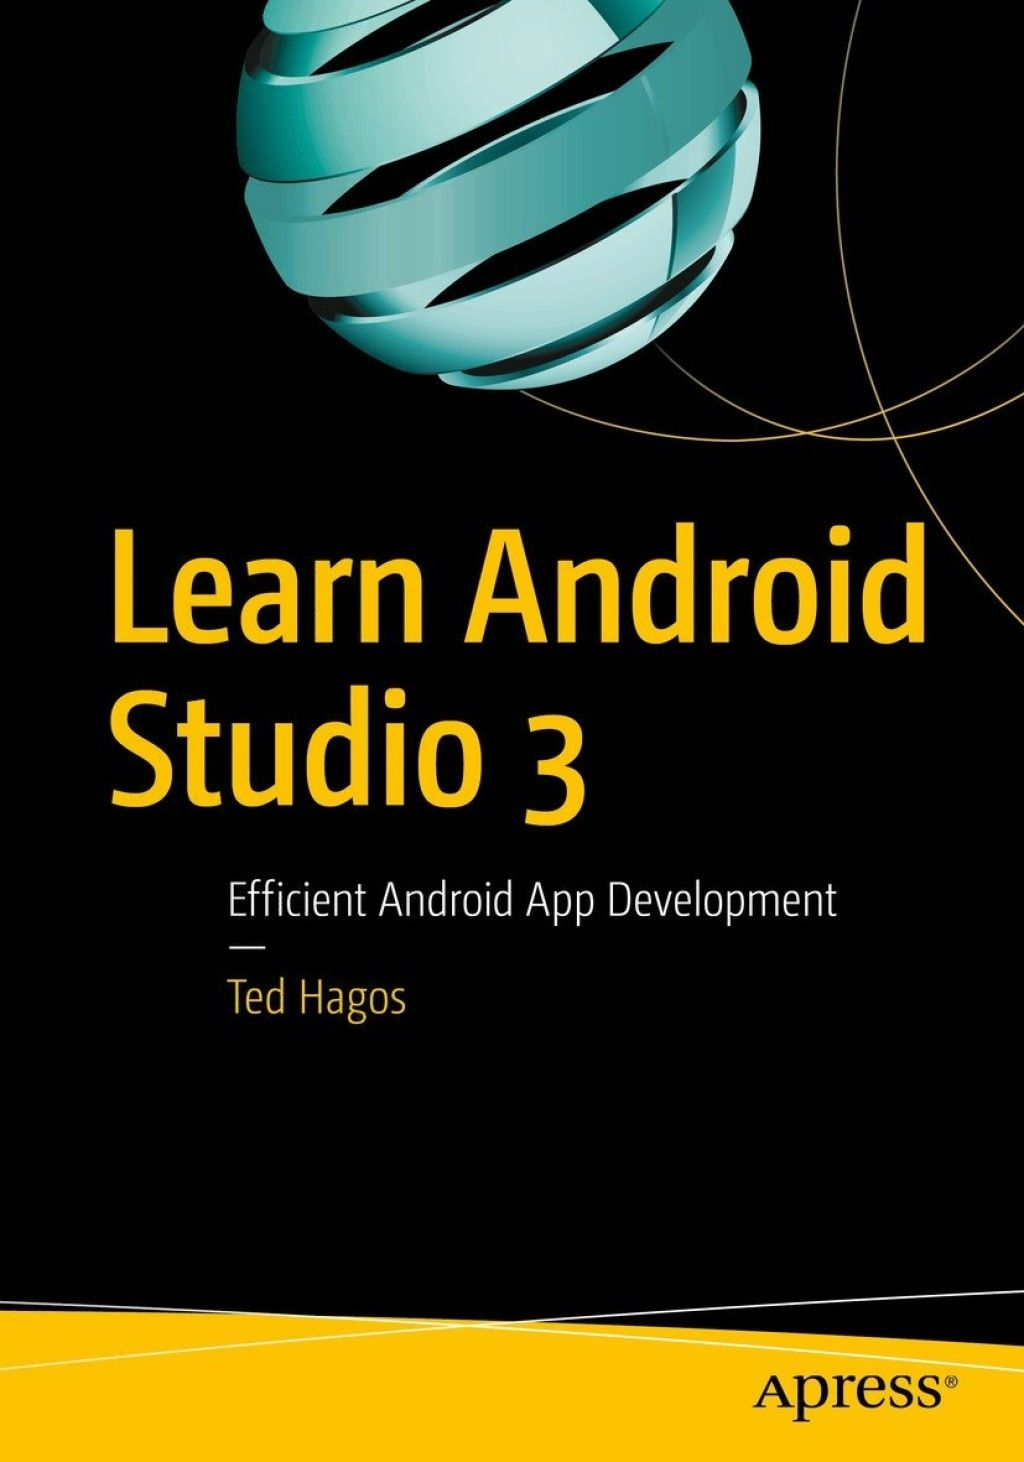 Learn Android Studio 3 (eBook) in 2019 | Products | Android